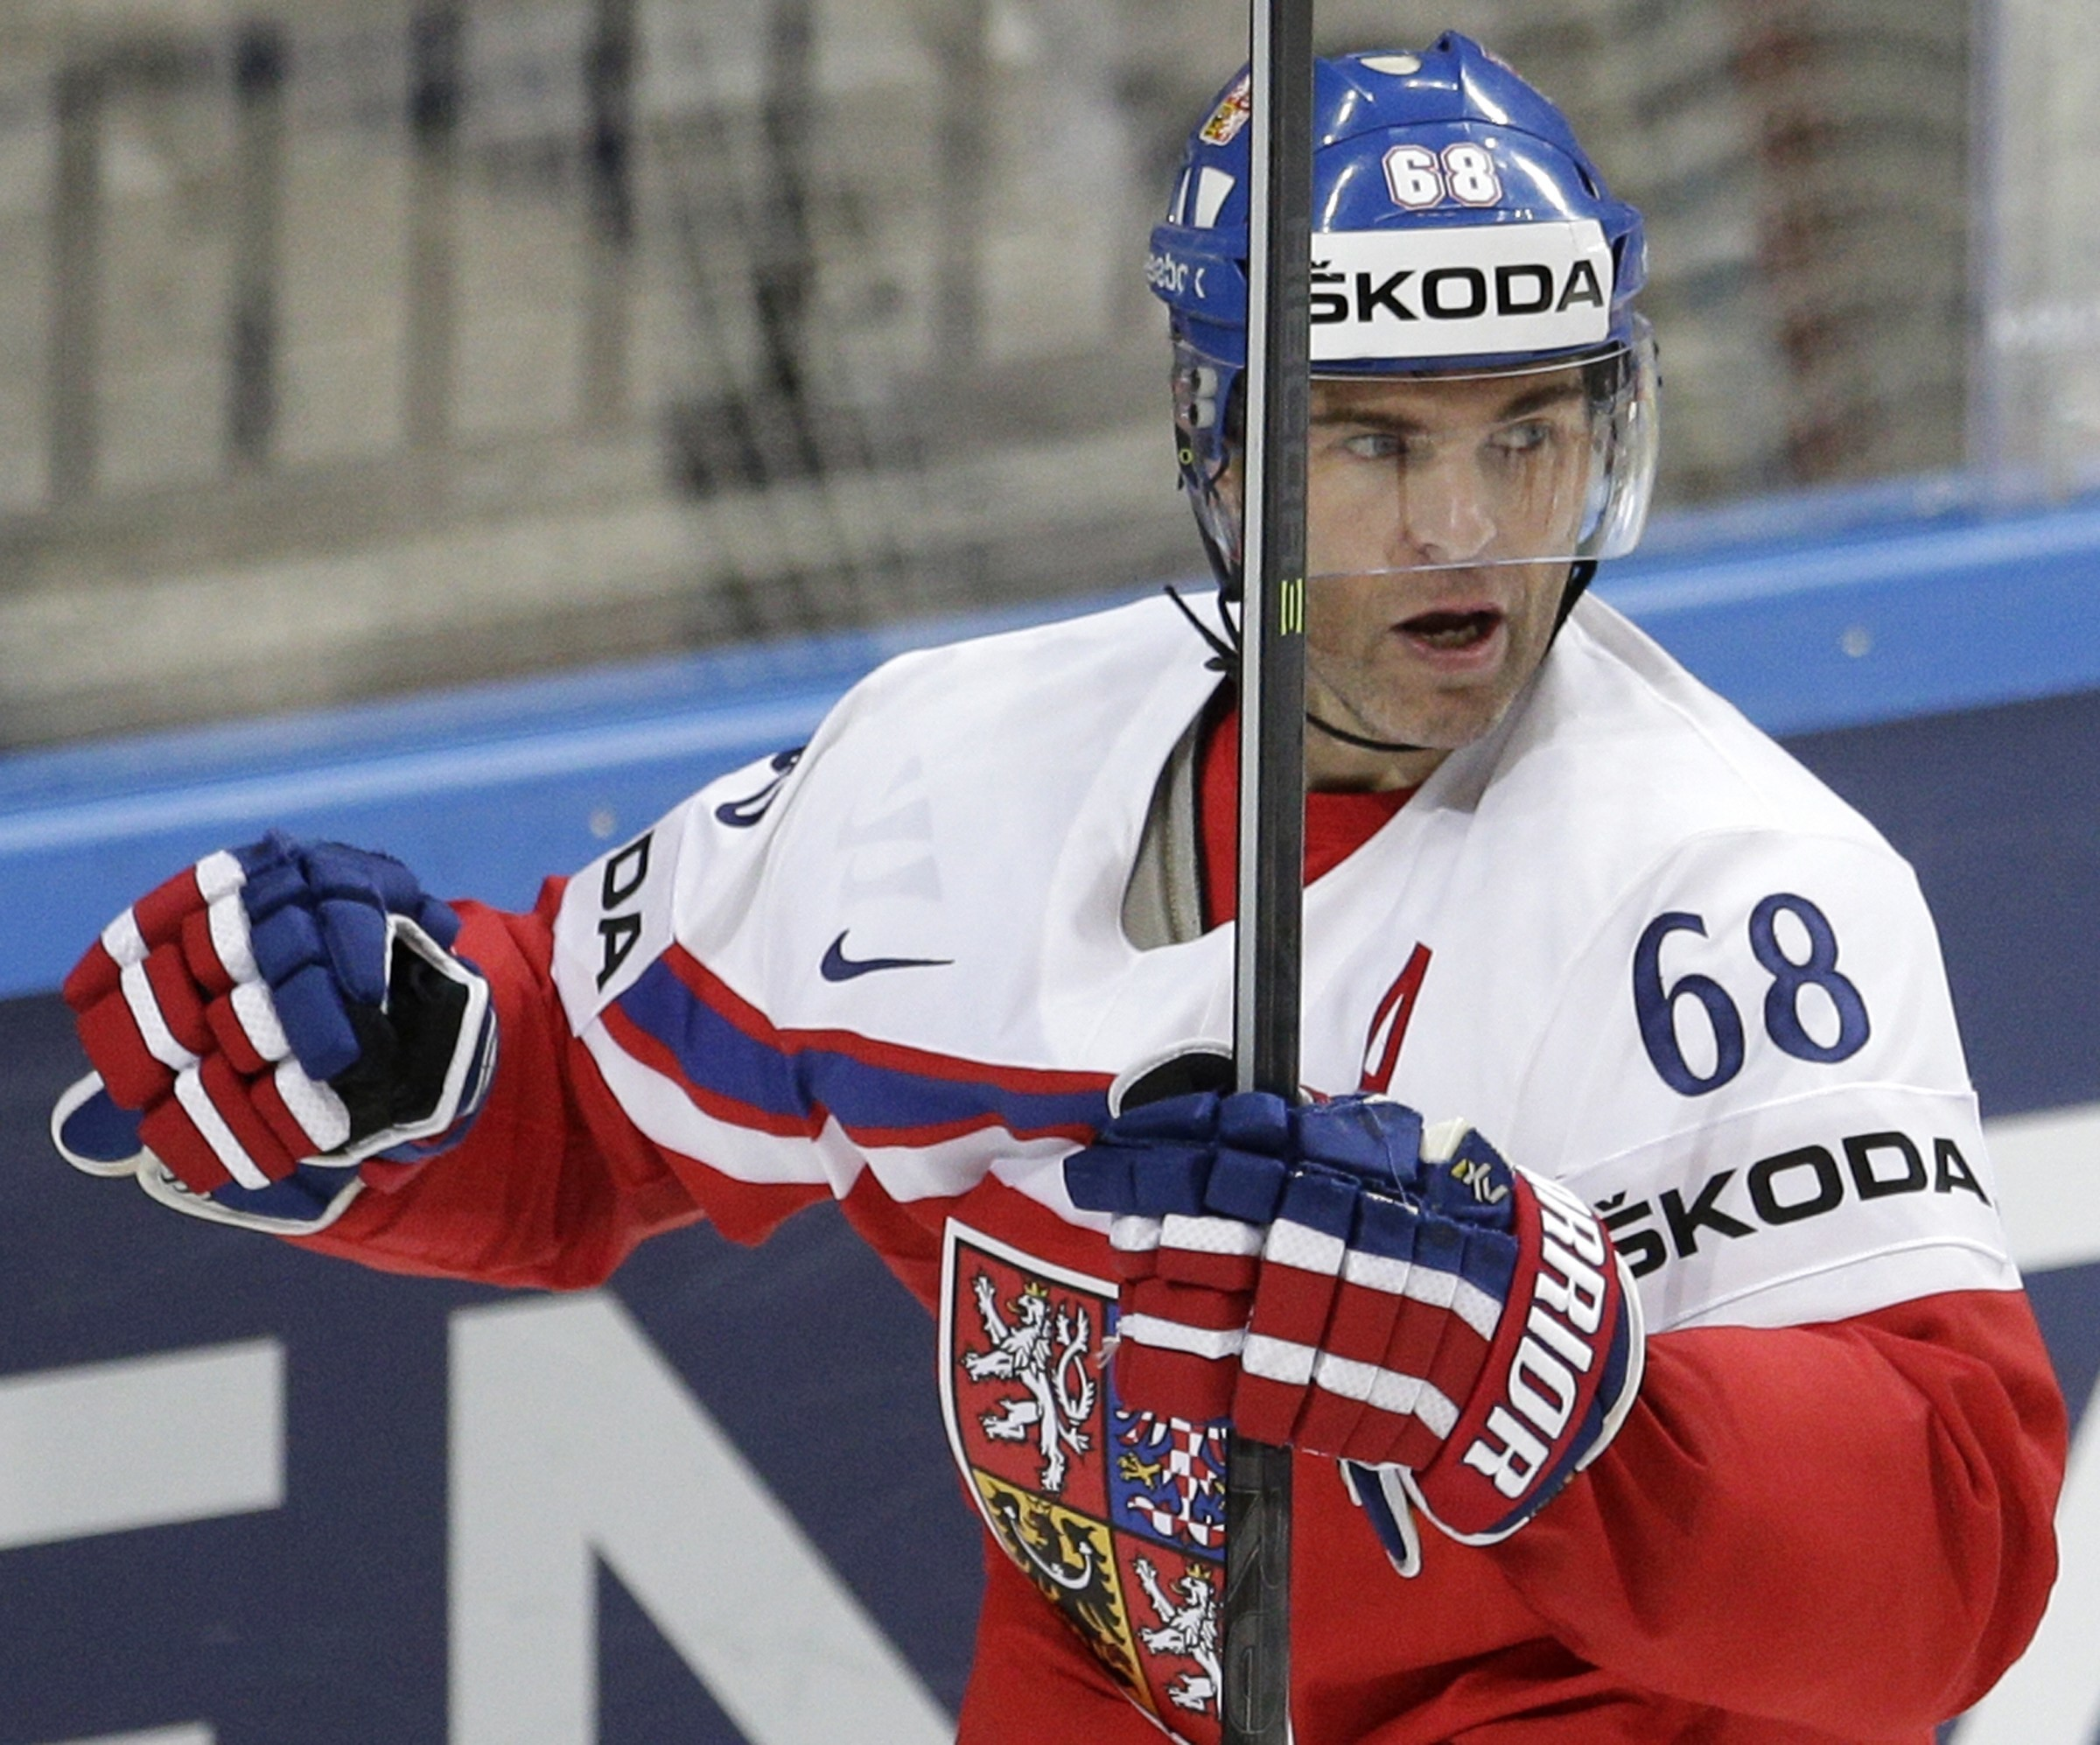 FILE - In this May 7, 2015, file photo, Czech Republic's Jaromir Jagr celebrates after scoring against France during the Hockey World Championships Group A match in Prague, Czech Republic. The Czech Republic will have to do without Jagr at the World Cup o